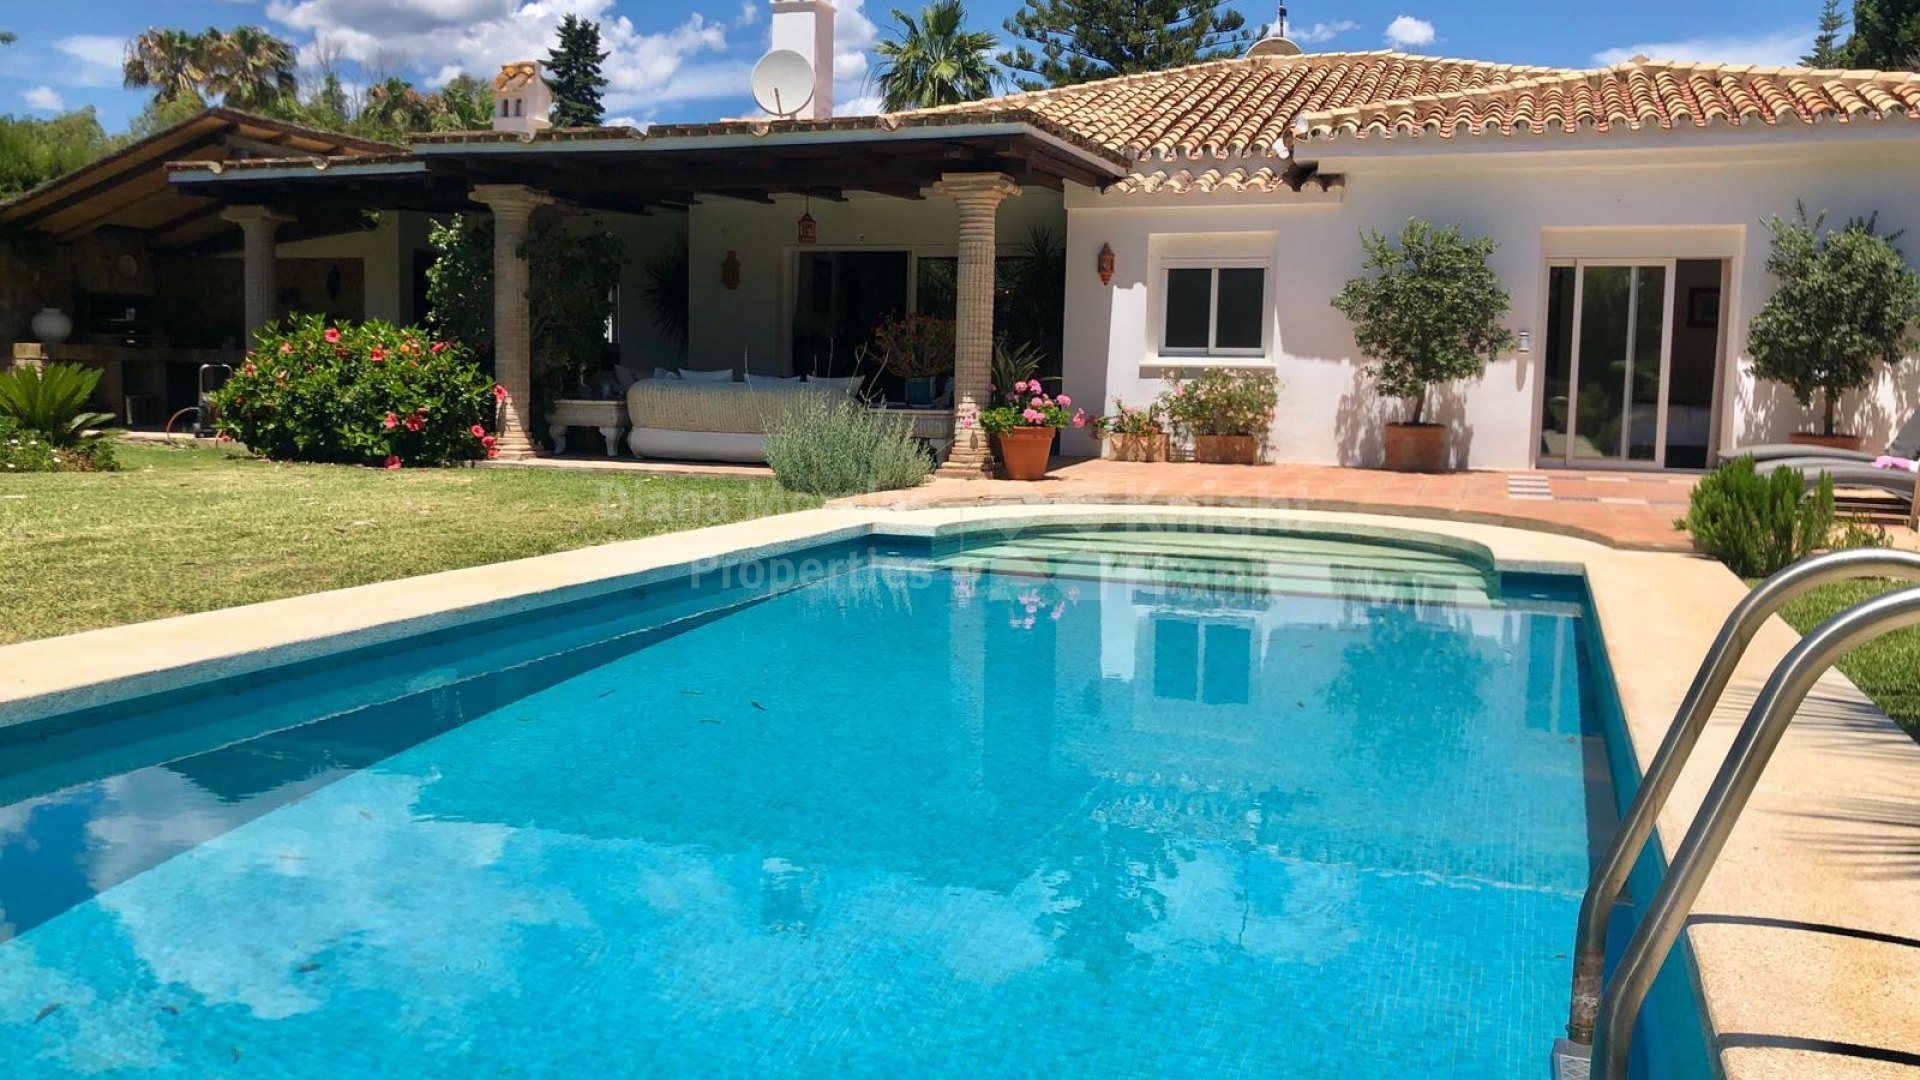 Paraiso Barronal, Villa close to the beach all in one floor